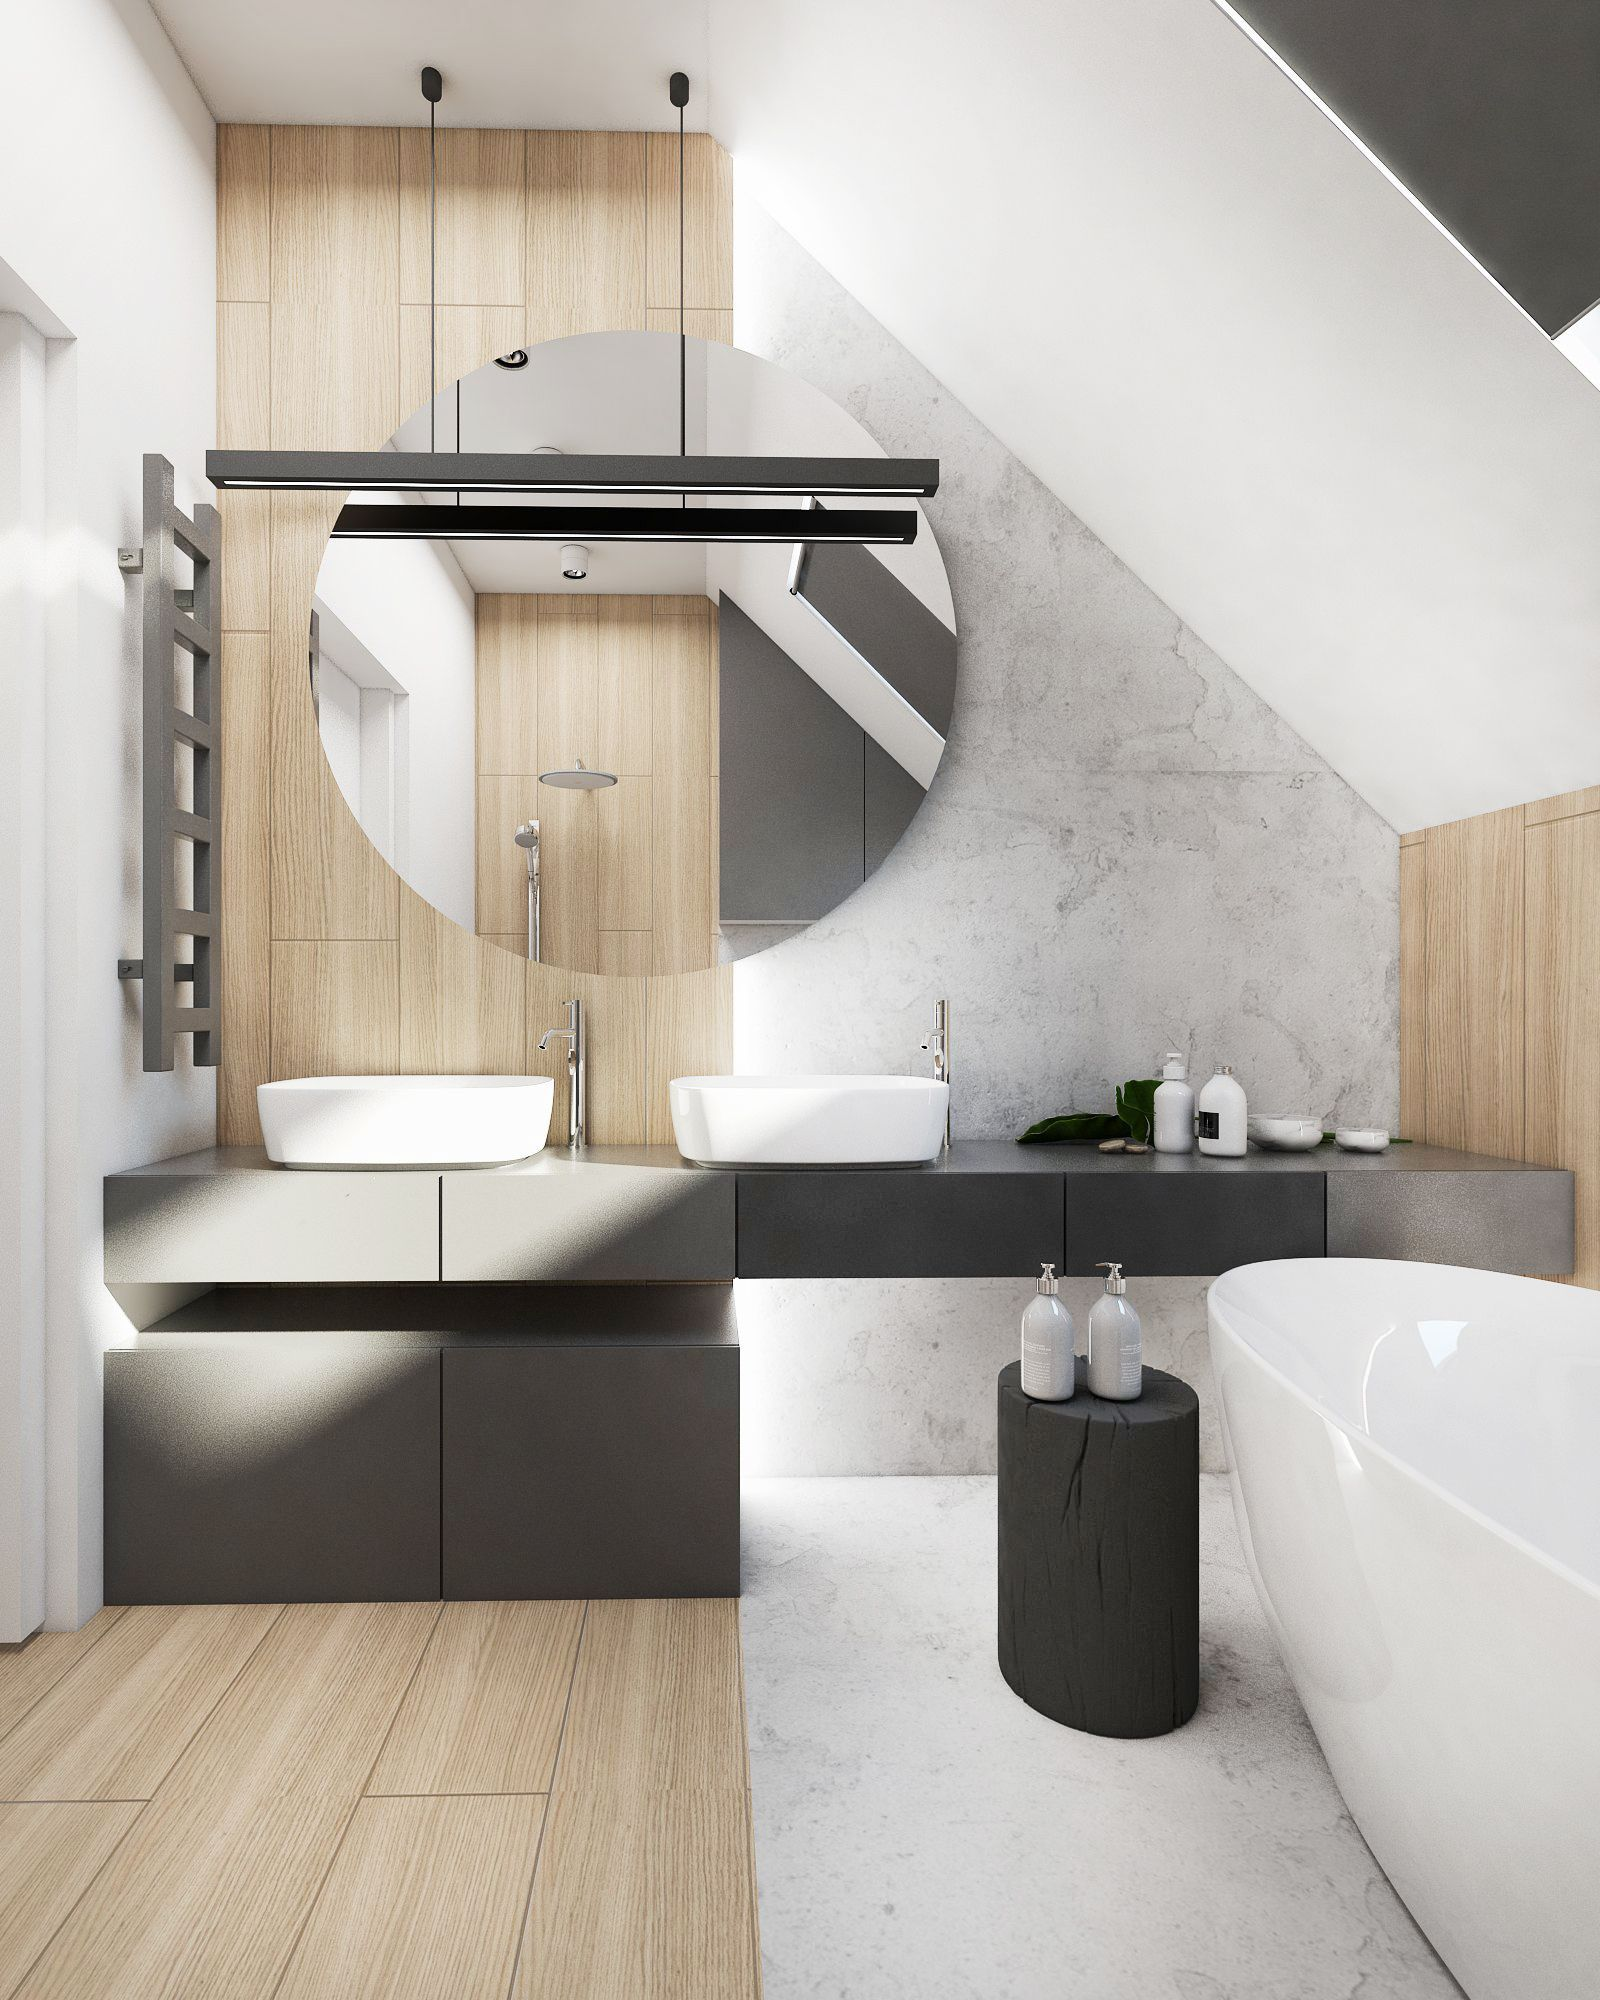 bathroom, wooden floor, white marble floor, white tub, black side table, white vaulted ceiling, wooden wall, wooden accent wall, black vanity, black cabinet, white sink